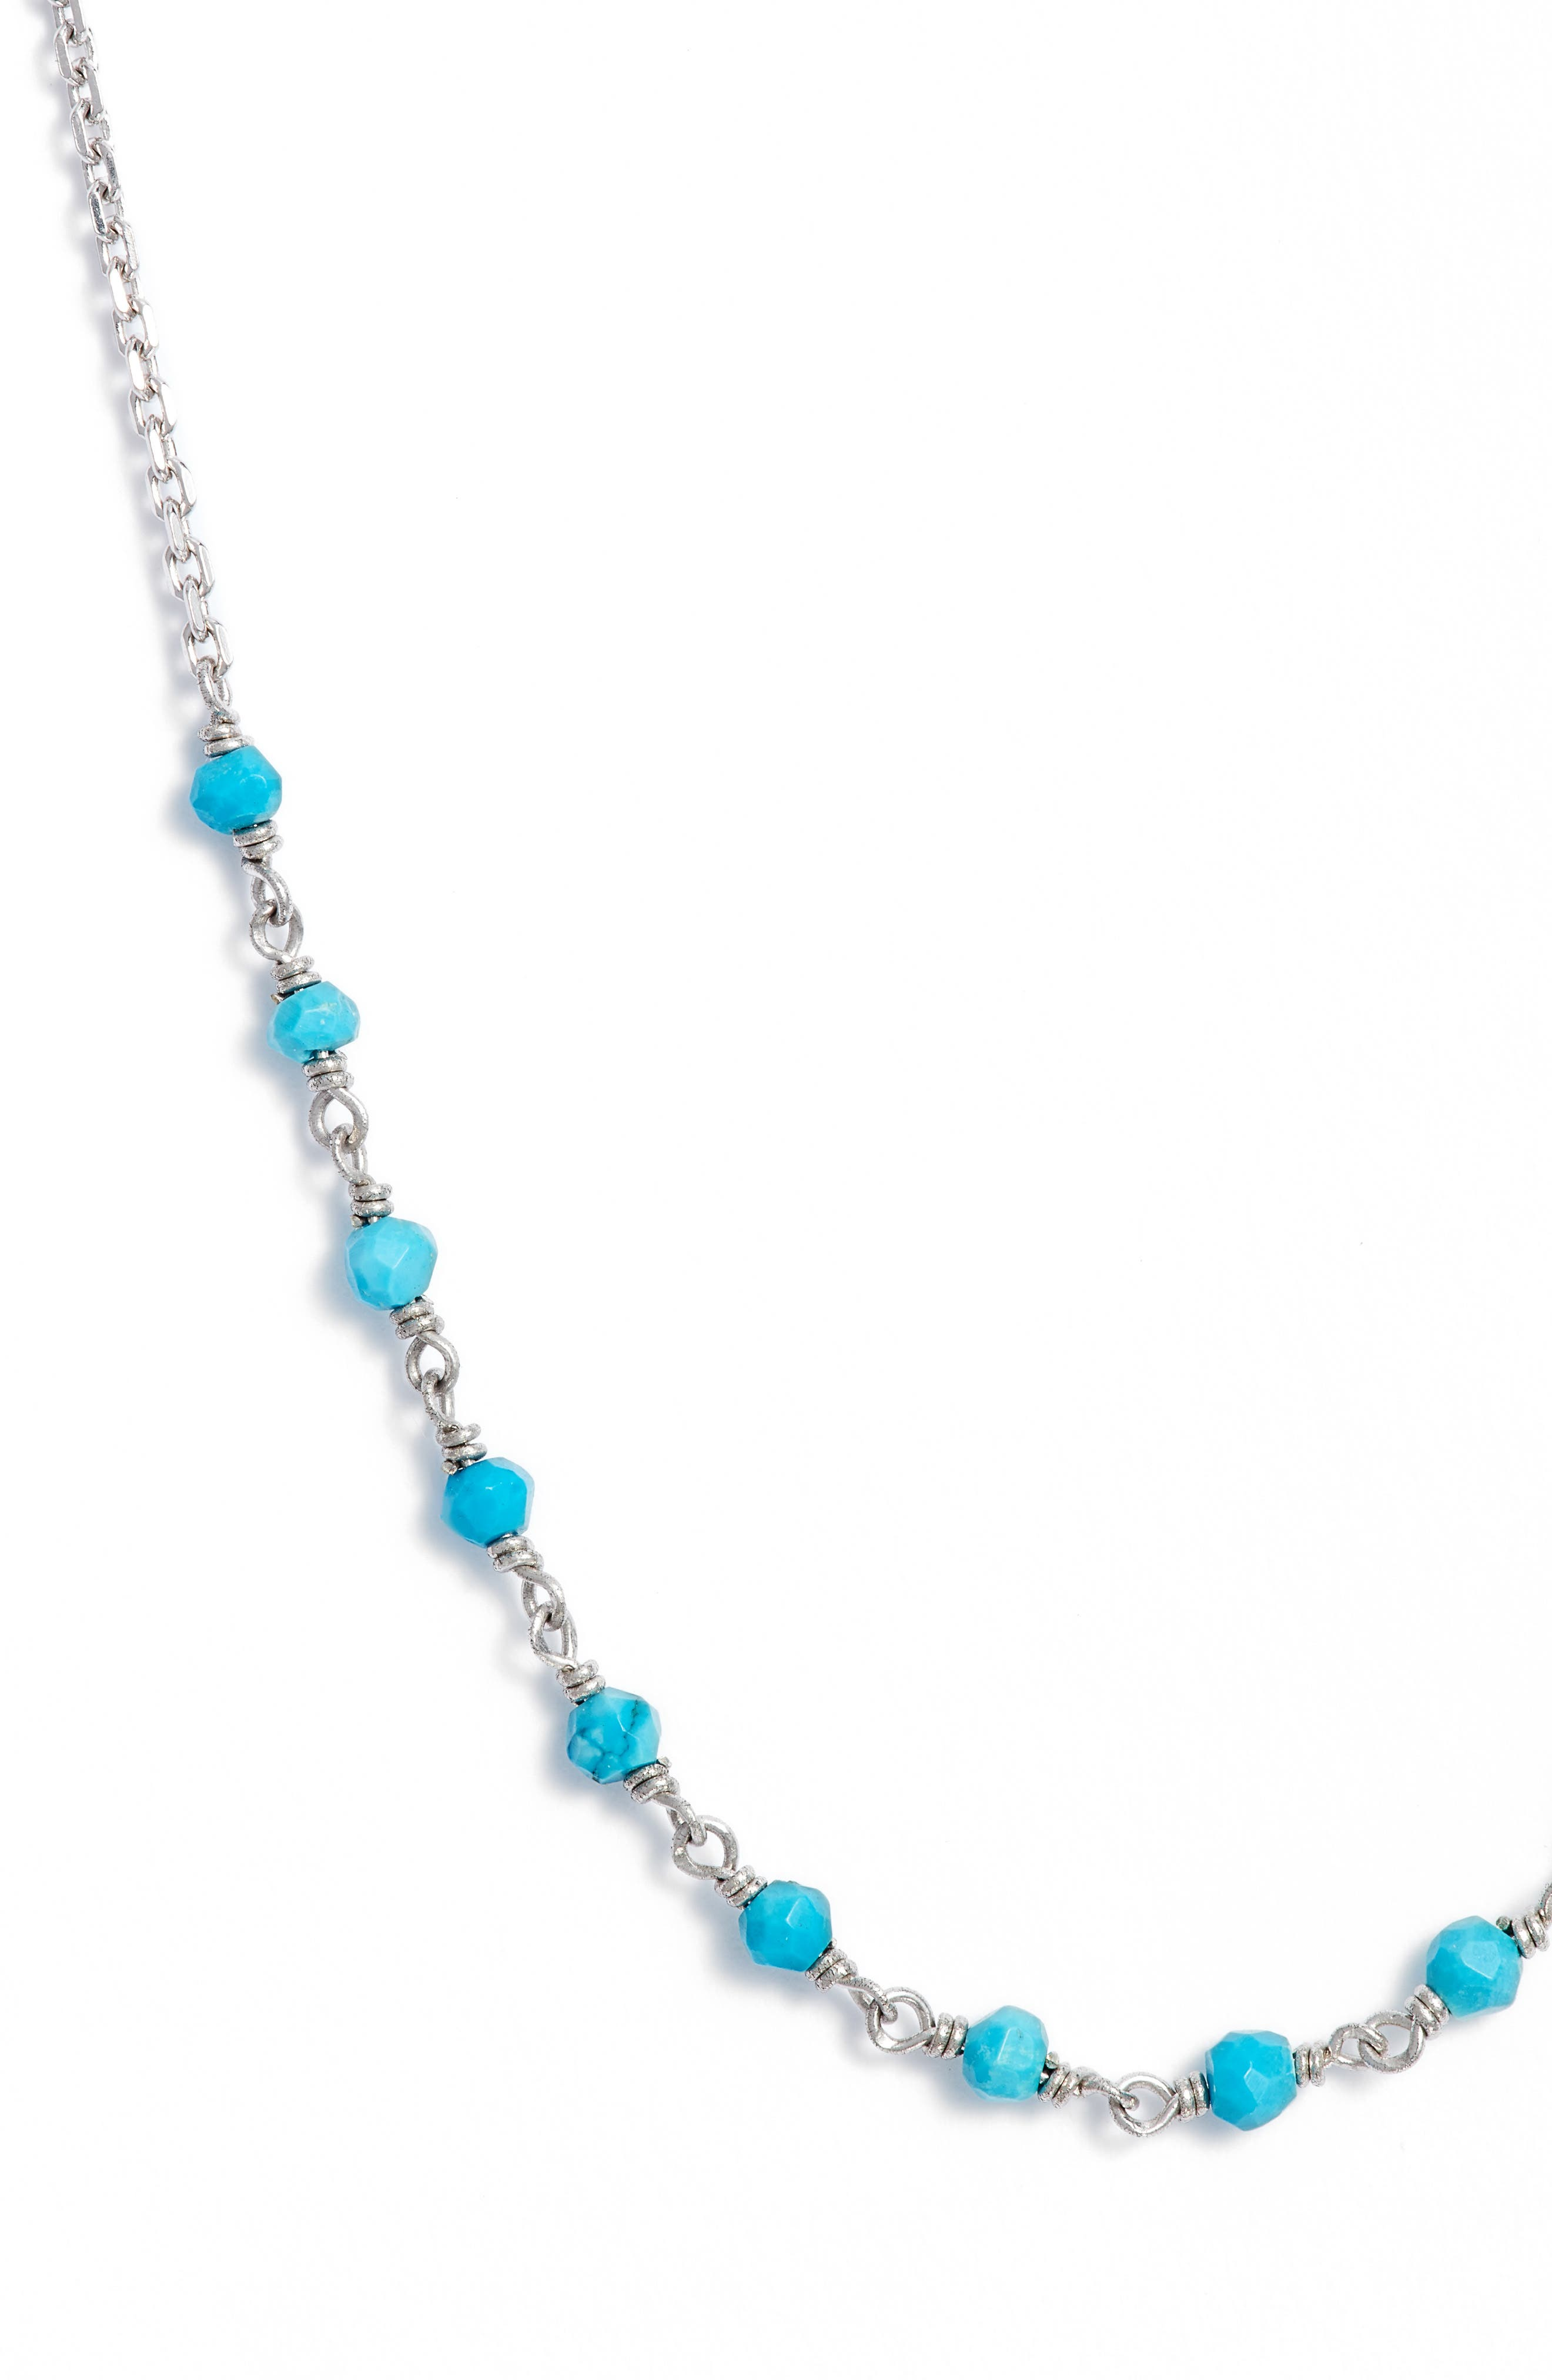 Lapis Collar Necklace,                             Main thumbnail 1, color,                             SILVER/ TURQUOISE